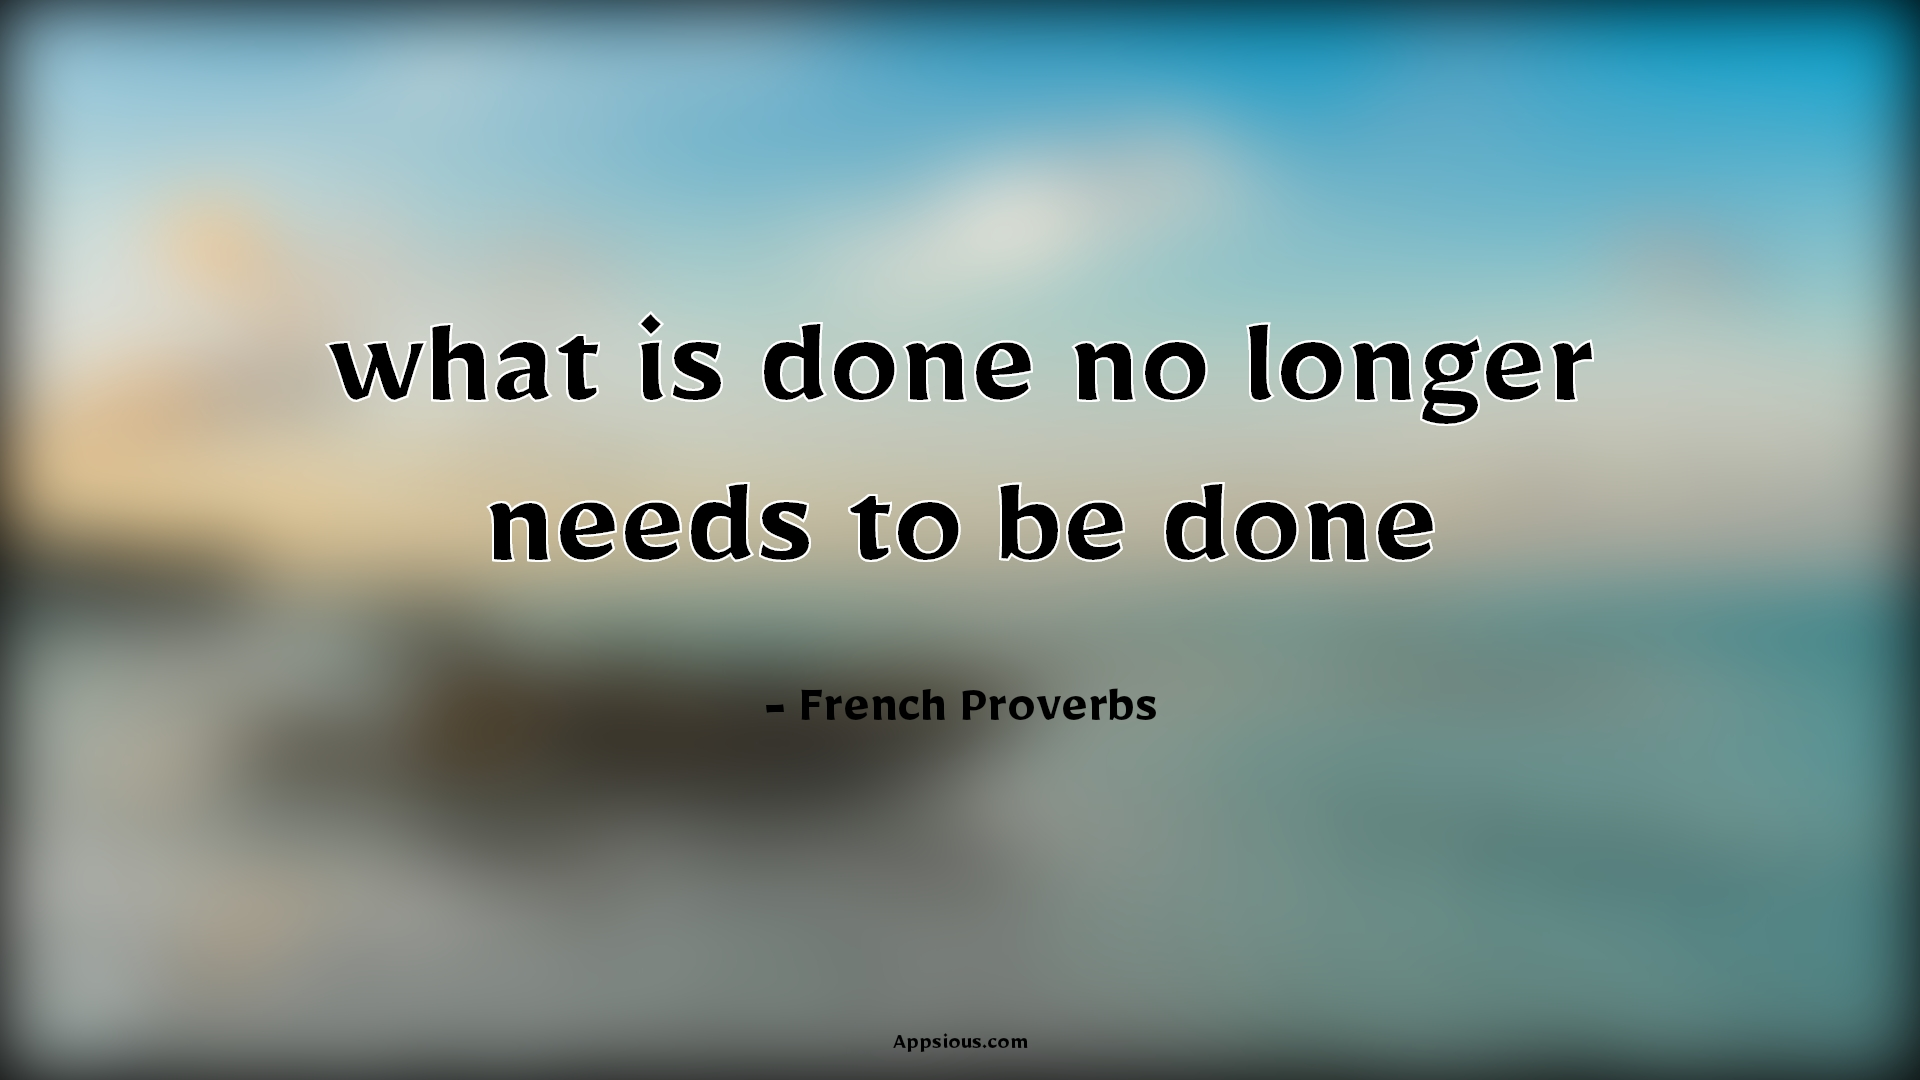 what is done no longer needs to be done